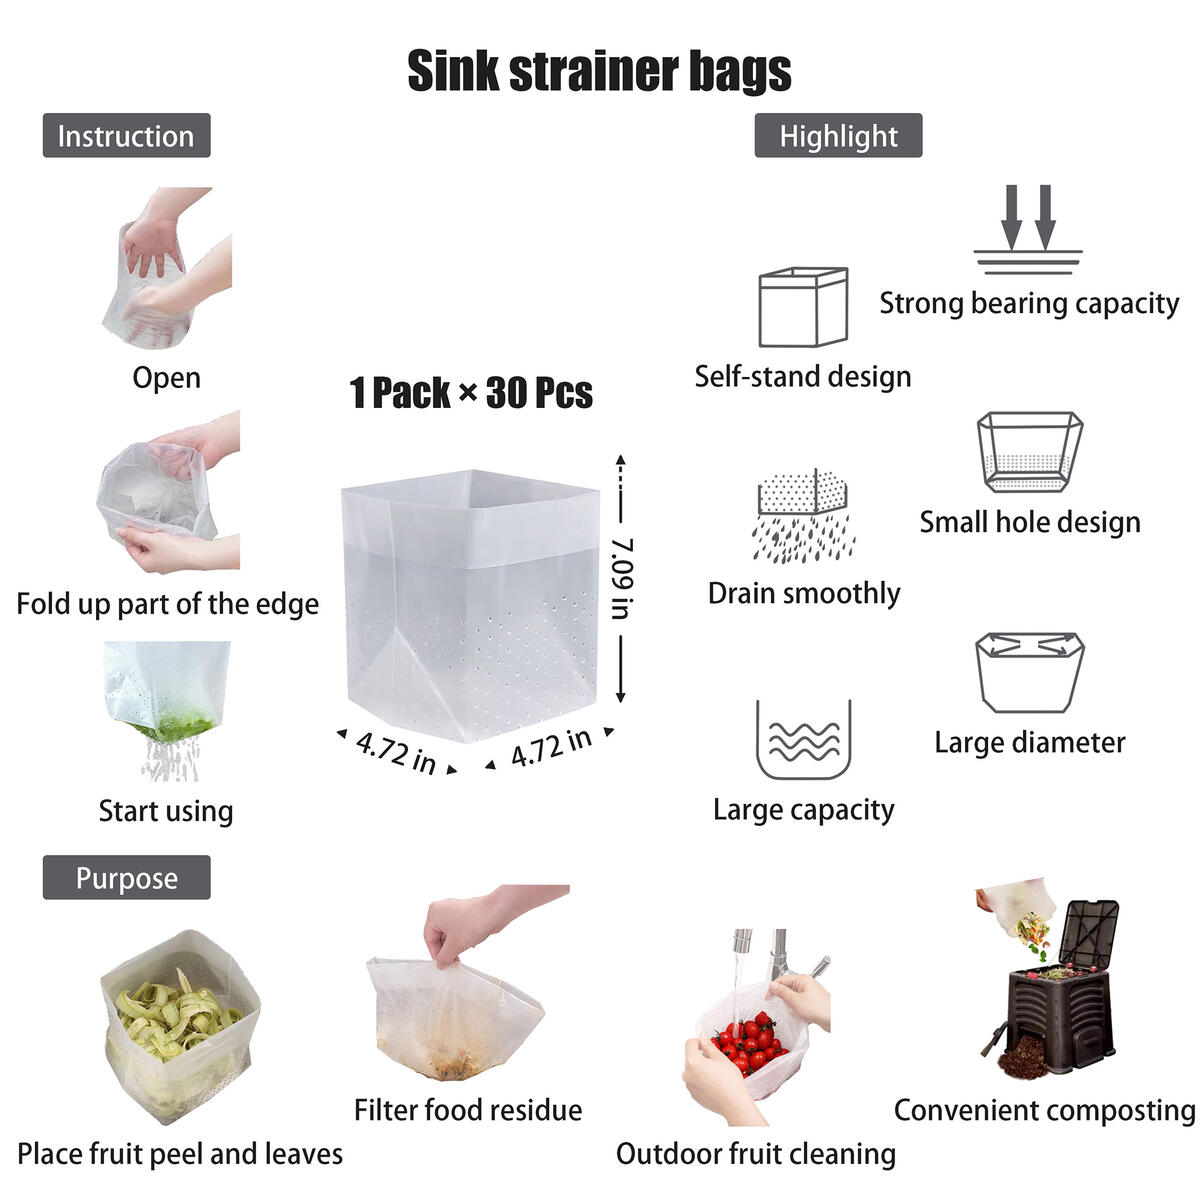 Family Dish Washing Tools/Kitchen Clean Gadget Set - Silicone Wash Gloves,Palm Scrubber,Folding Scraper Brass Brush,Emery Sponge,Disposable Handy Wipes,Sink Strainer Bags,Stainless Steel Soap(10Packs)